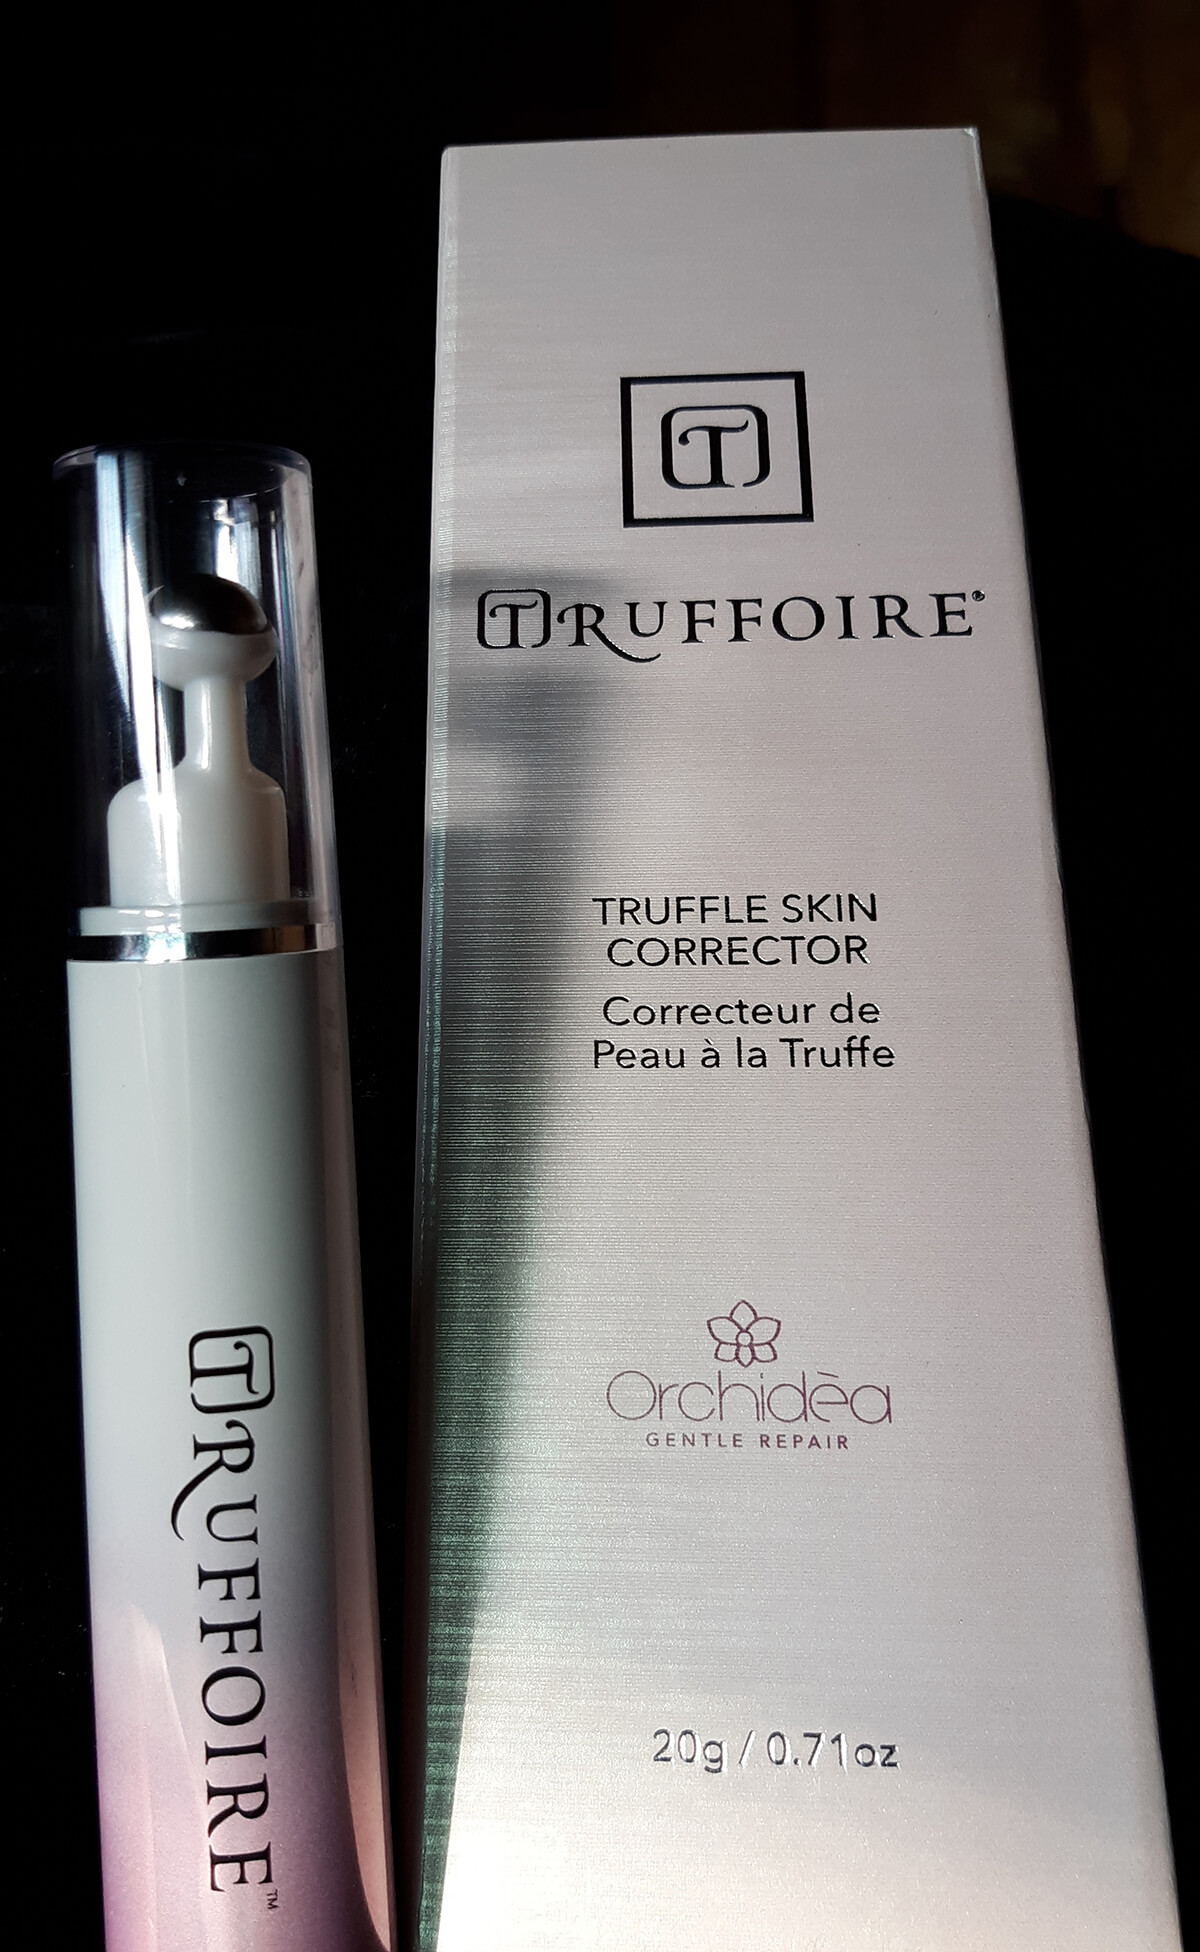 Truffoire Skin Corrector next to box